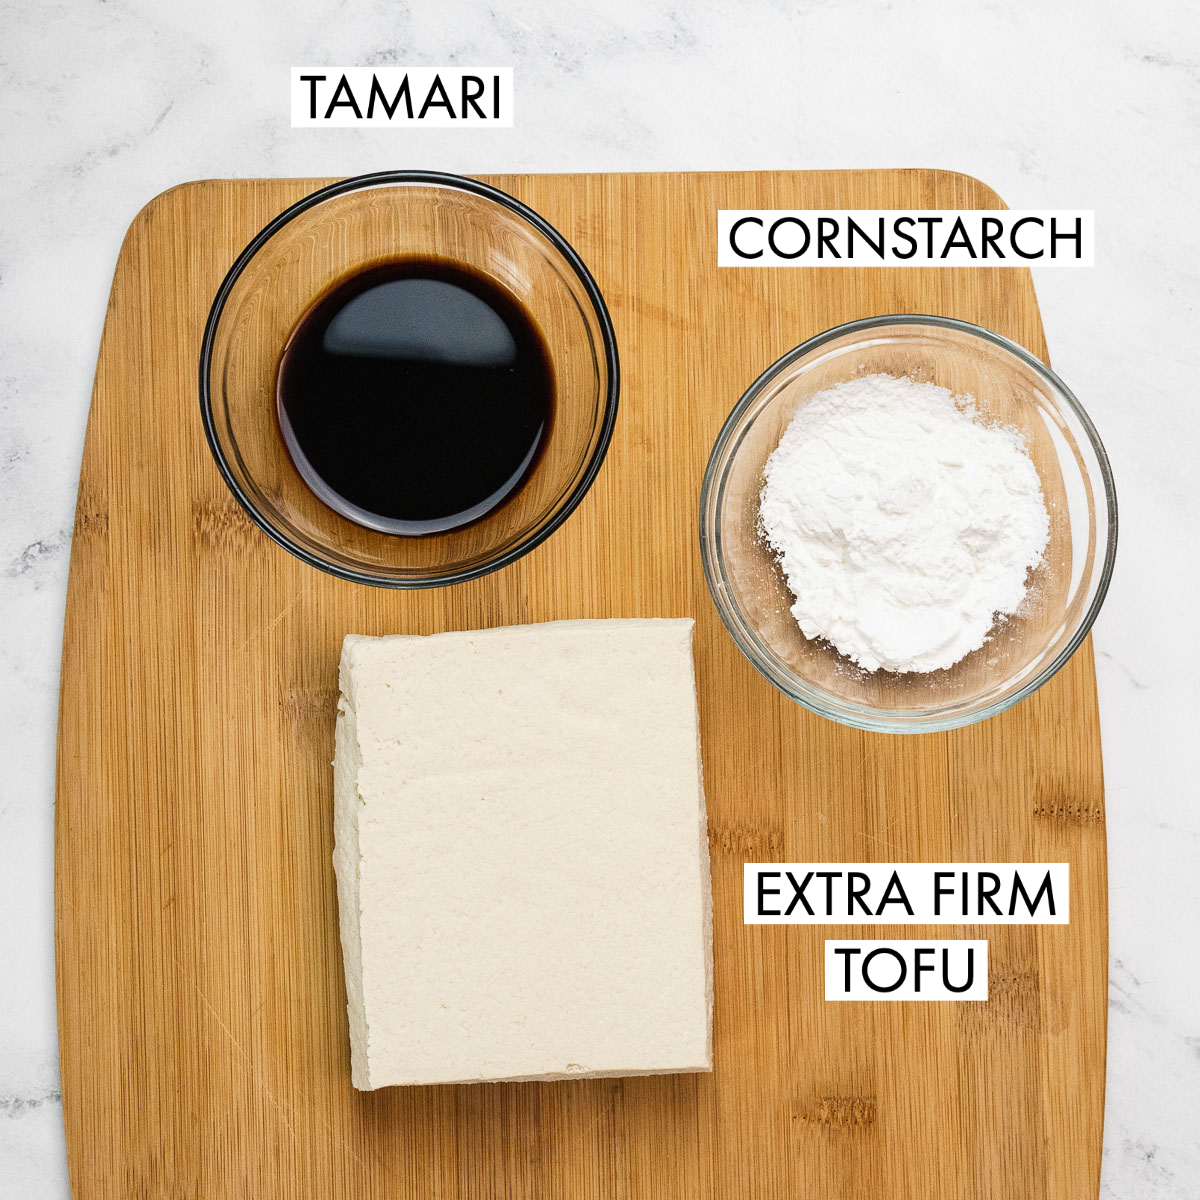 image of  tamari, cornstarch and extra firm tofu ingredients for kung pao tofu